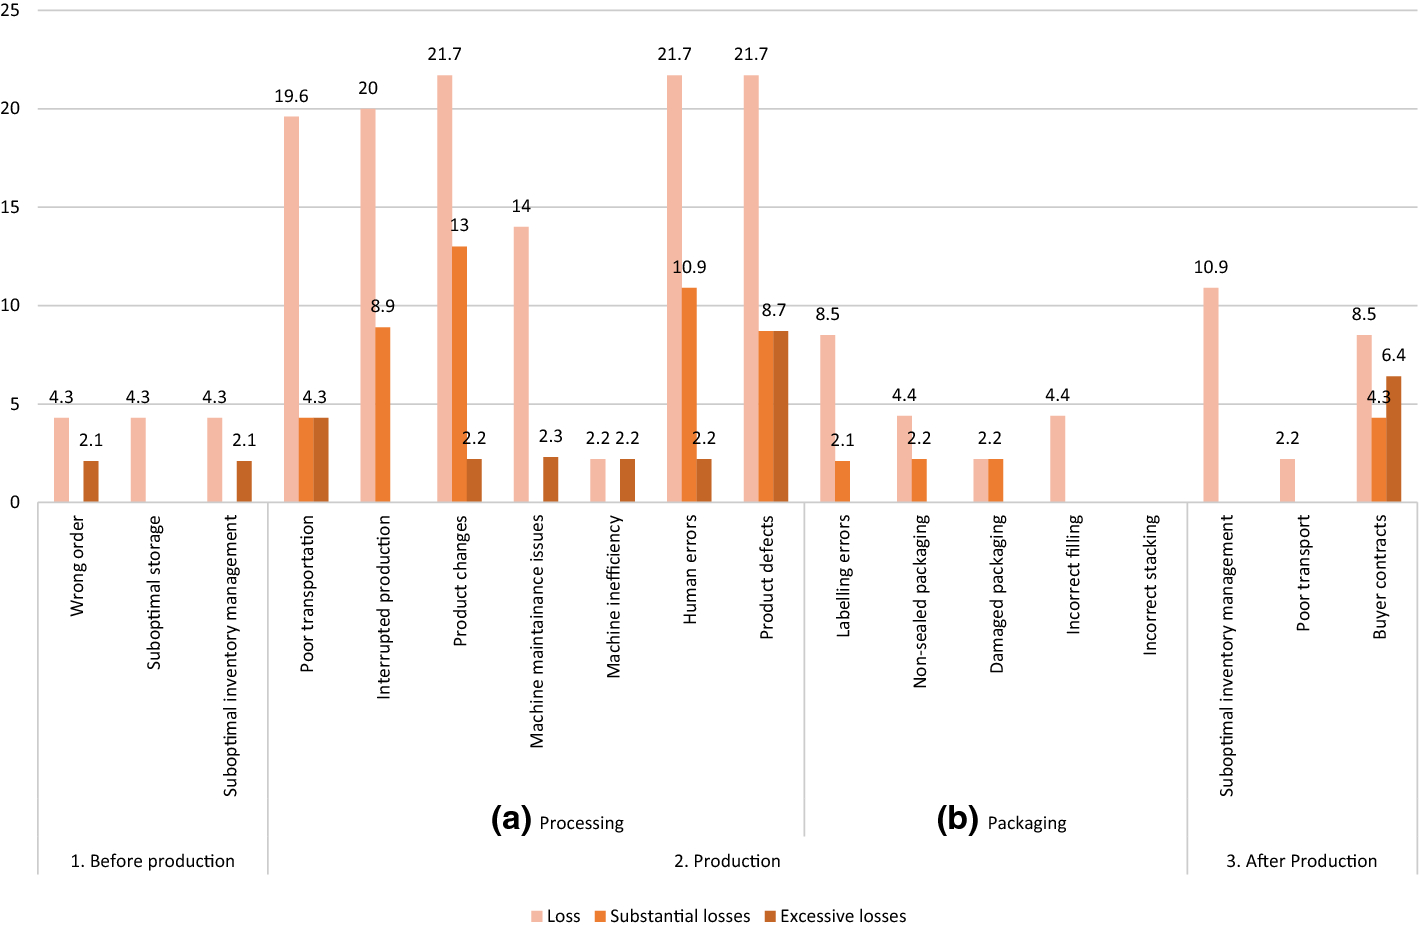 Importance of sustainable operations in food loss: evidence